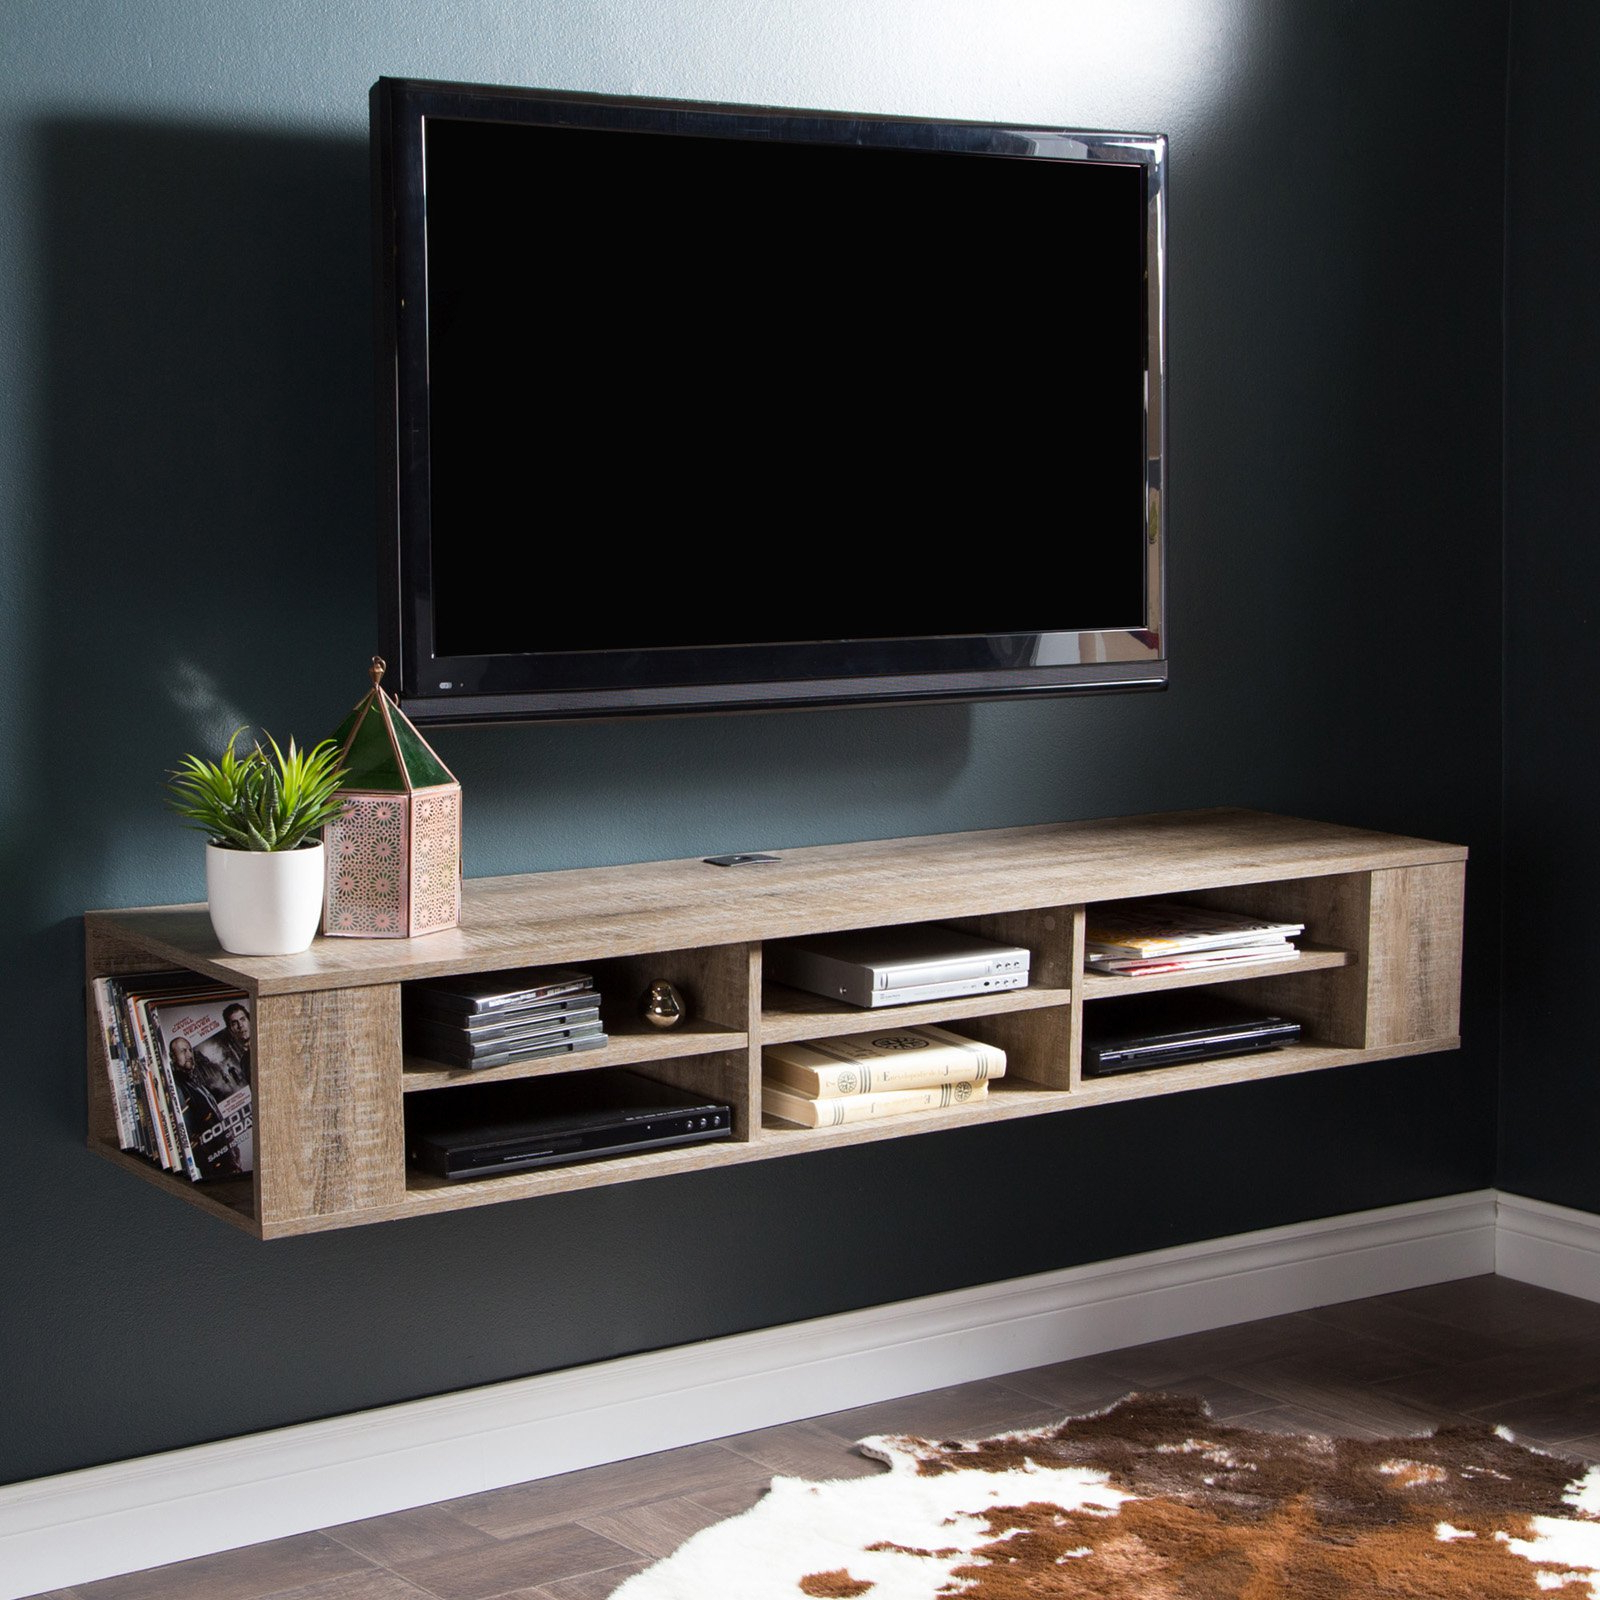 Most Recently Released Furniture Under Wall Mounted Tv Cabinet With Doors Full Motion Mount Inside Console Tables Under Wall Mounted Tv (View 5 of 20)